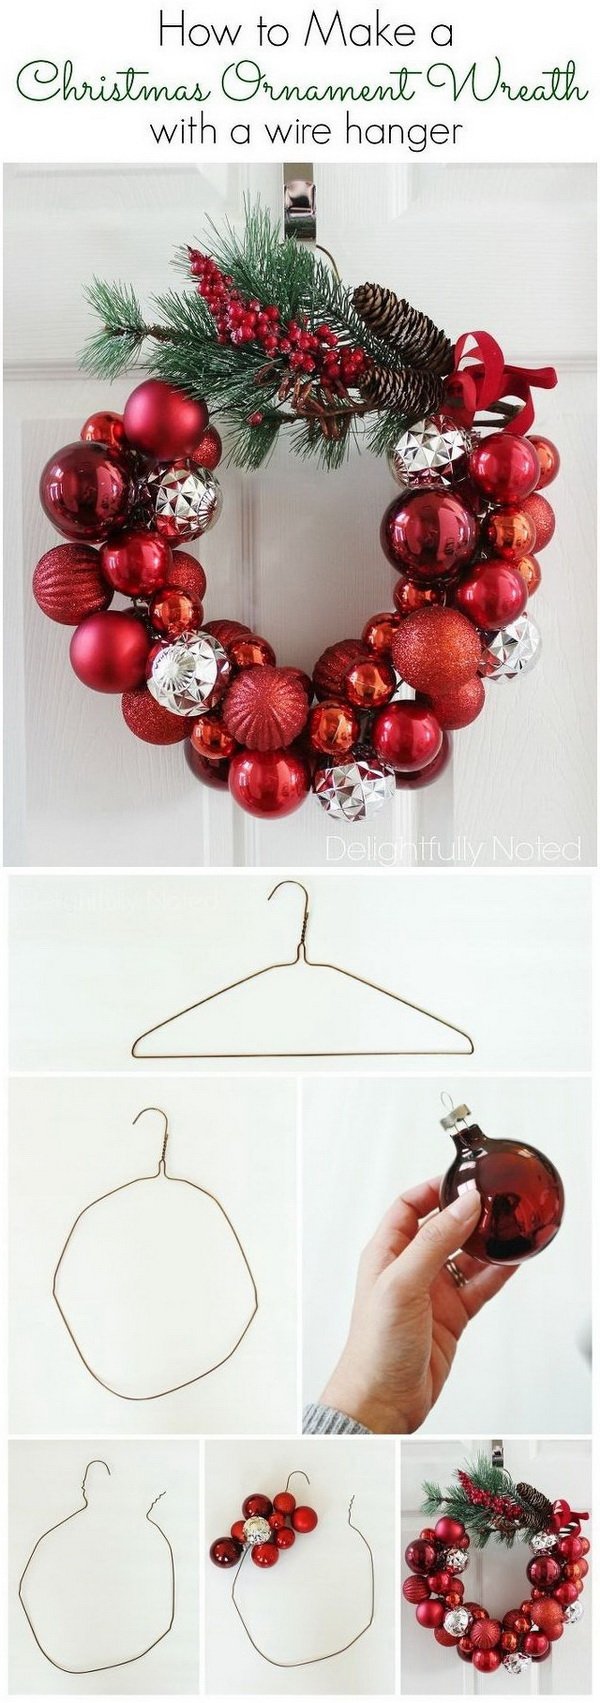 diy christmas ornament wreath - Christmas Decoration Ideas To Make